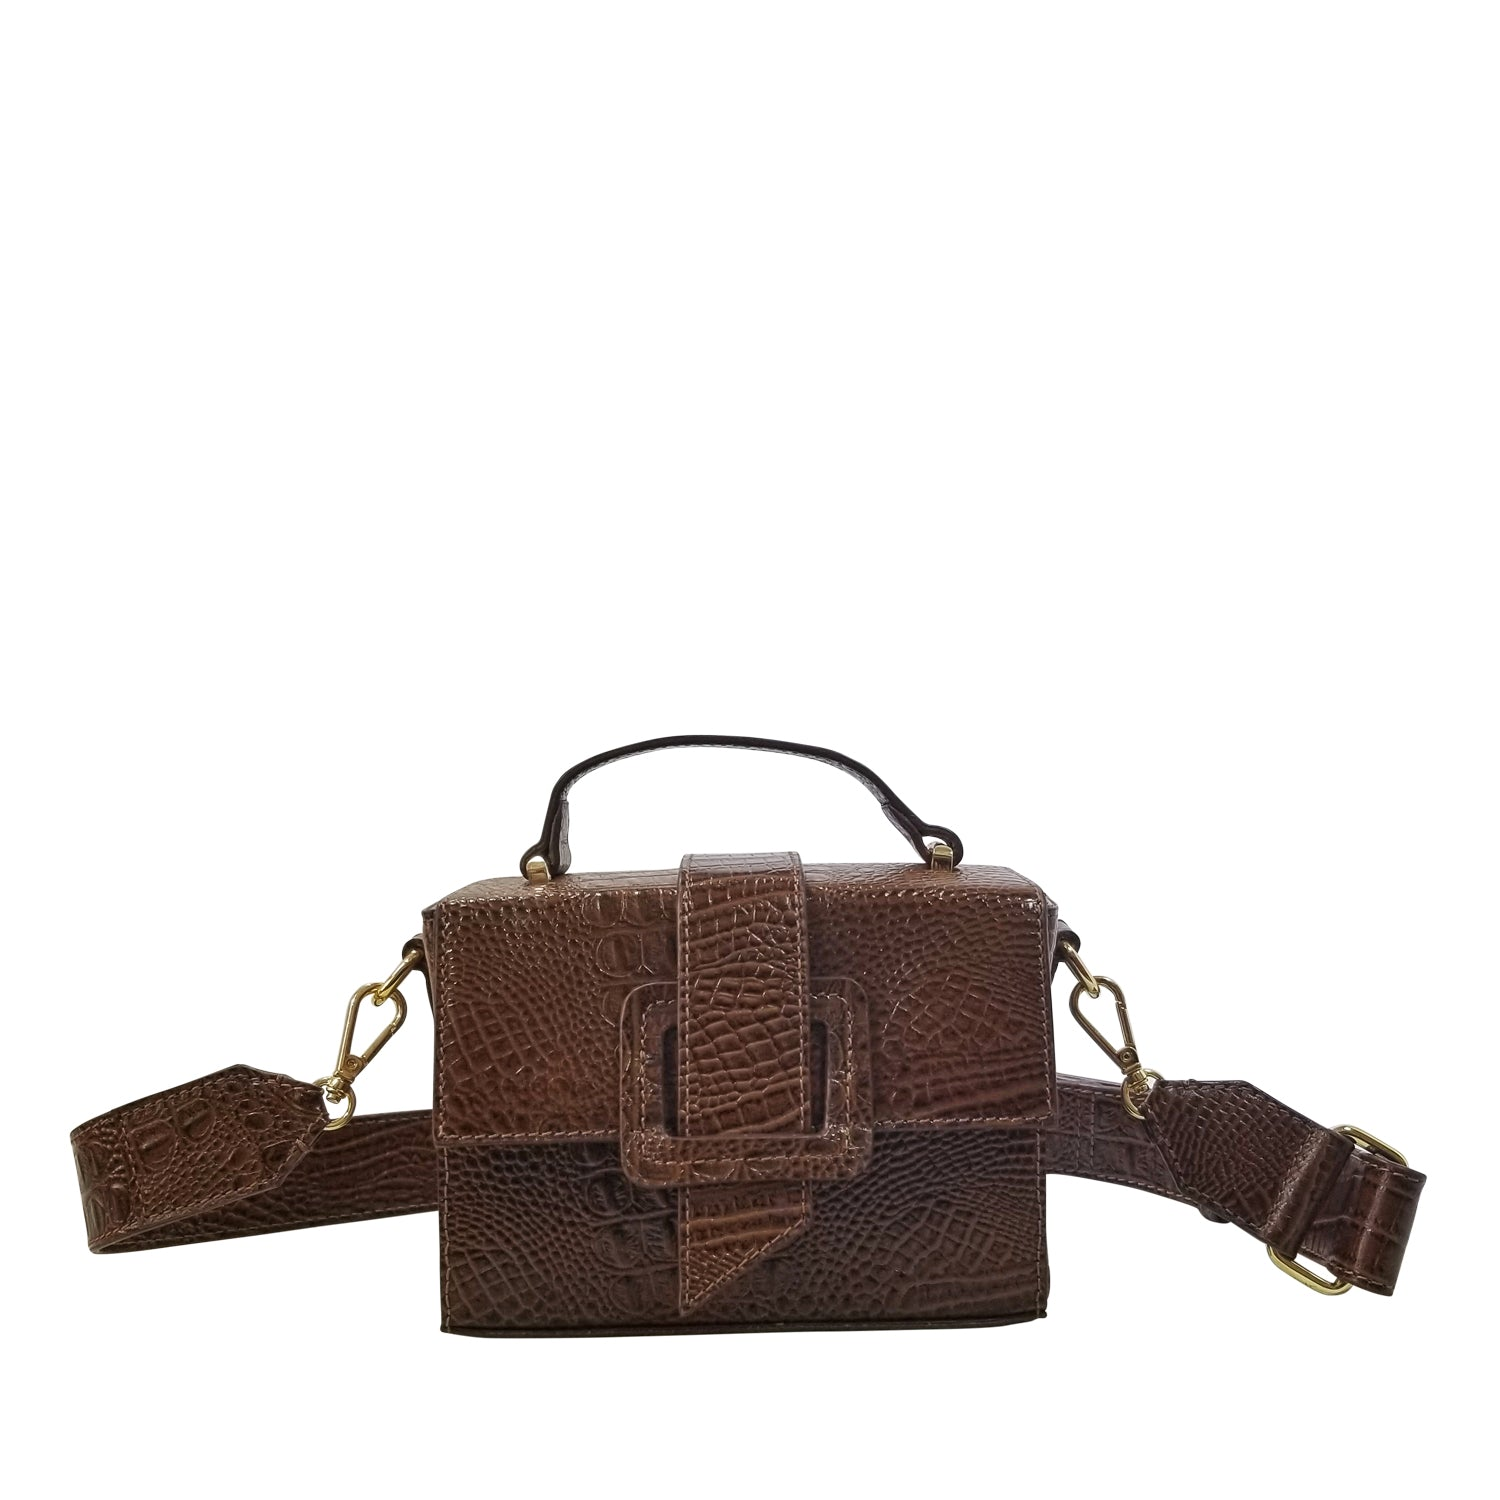 MITCH CROCO BOX BAG